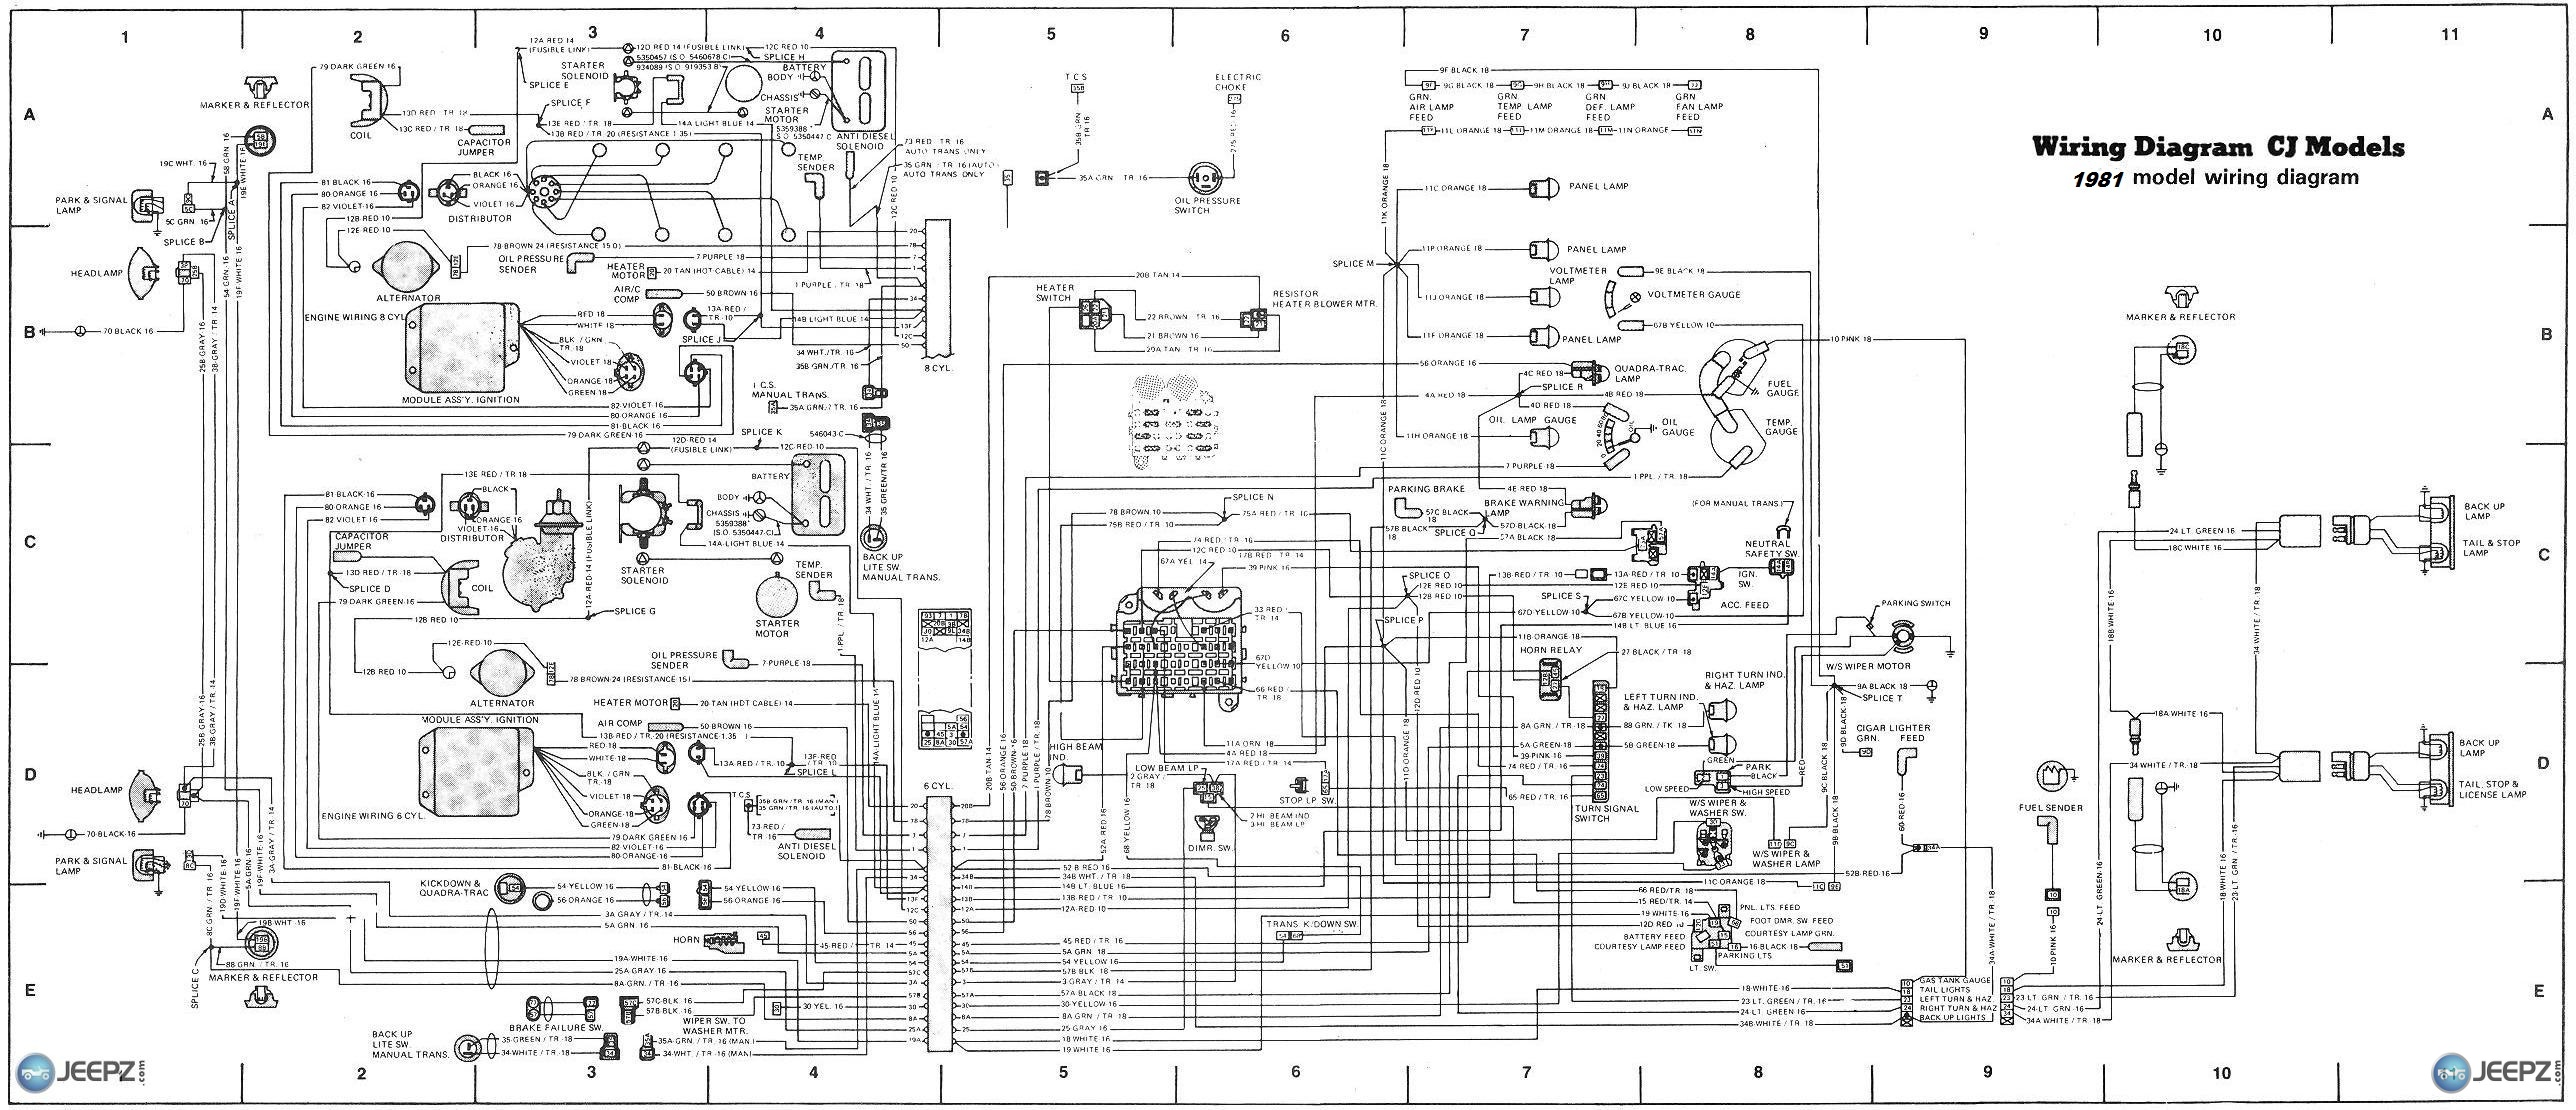 Cj5 Wiring Diagram Data 1978 Dodge 1979 Jeep In Color 1966